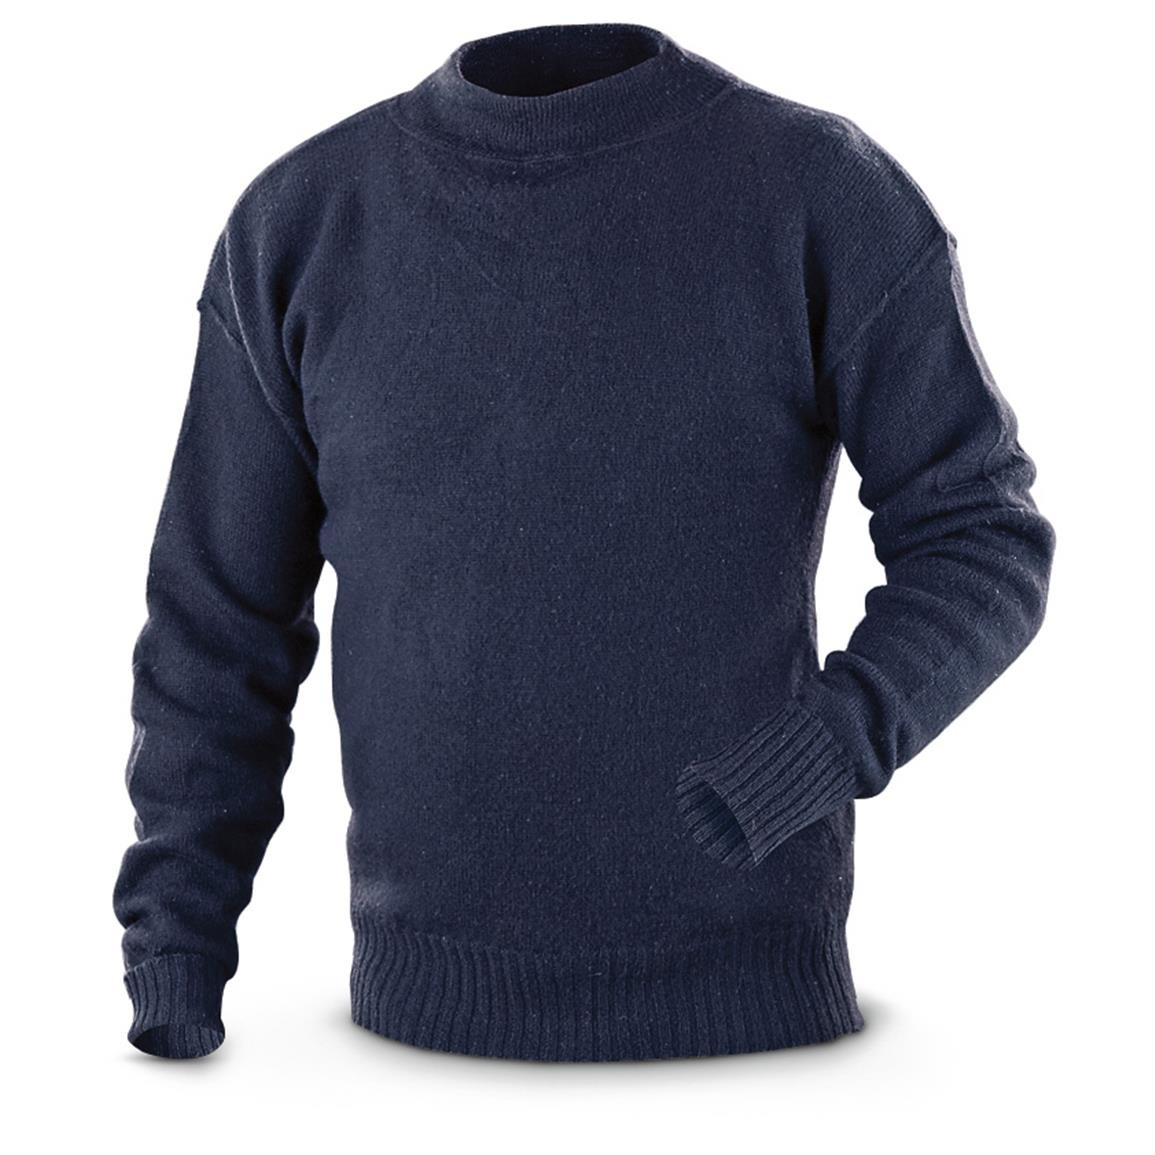 Used U.S. Military Surplus Wool Sweater - 619360, Sweaters at ...